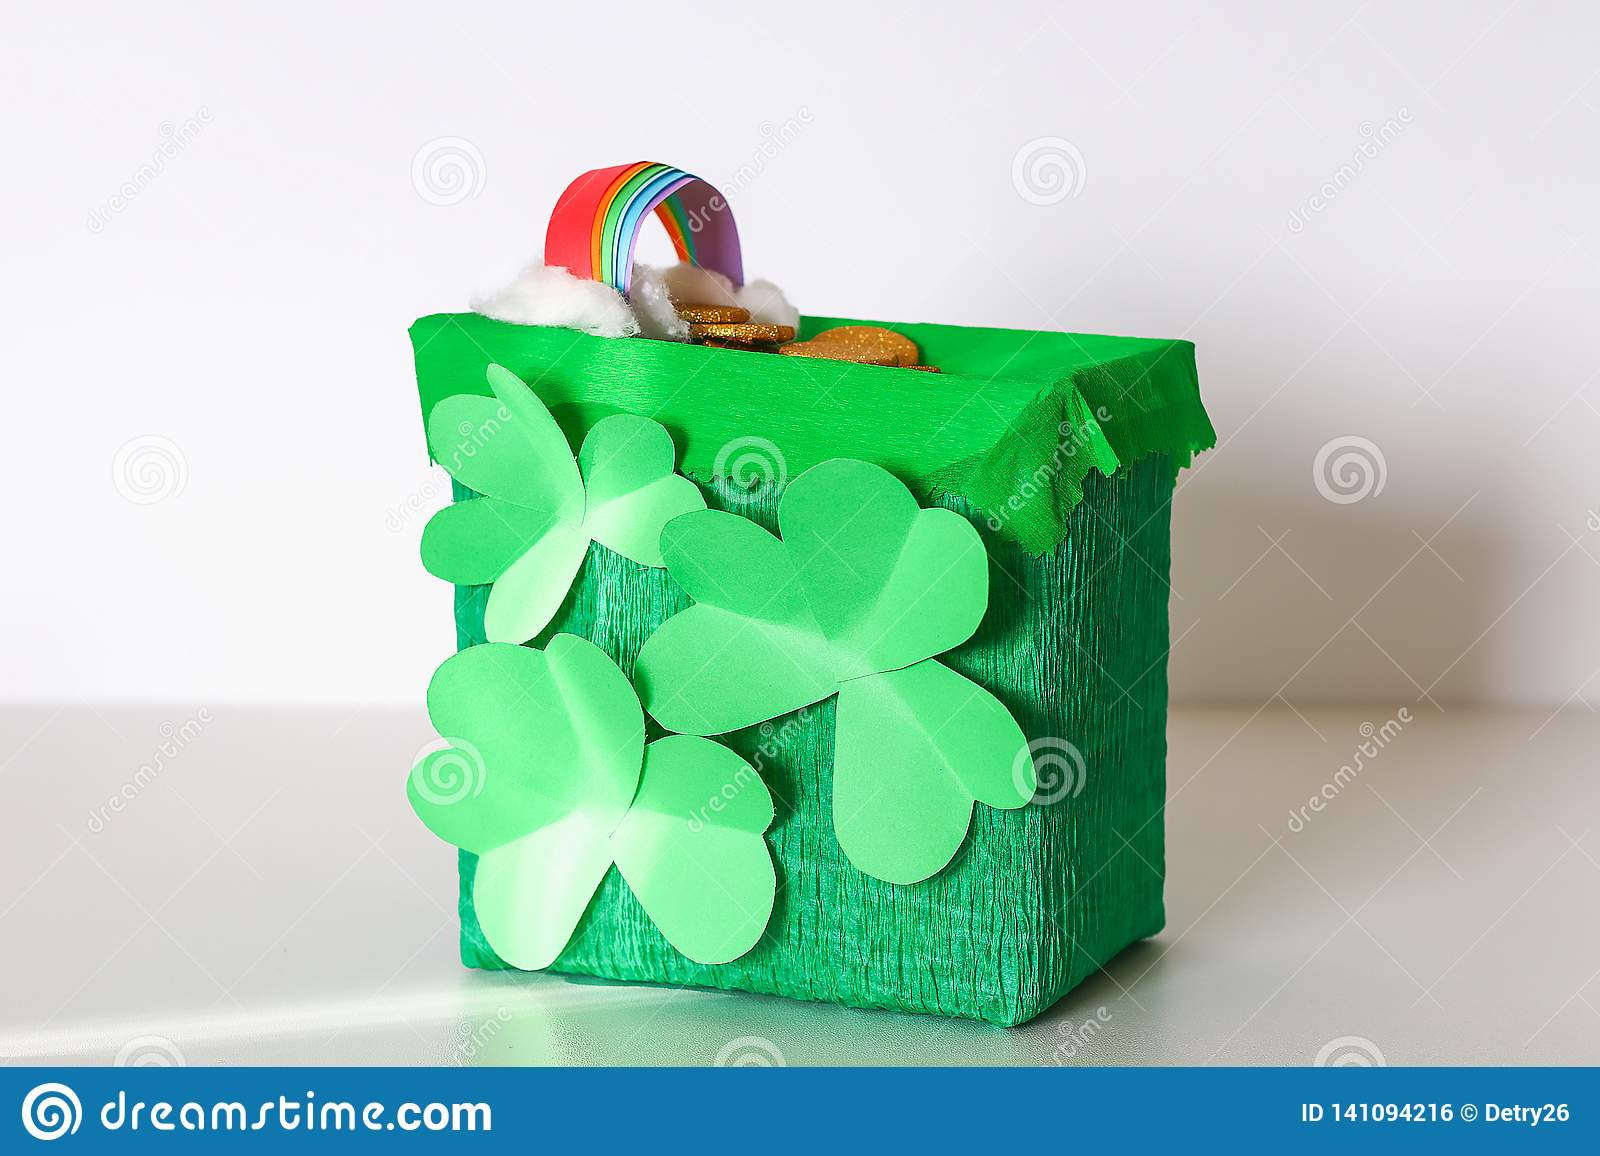 DIY leprechaun trap with gold coins, rainbow and green ladder St Patricks Day background